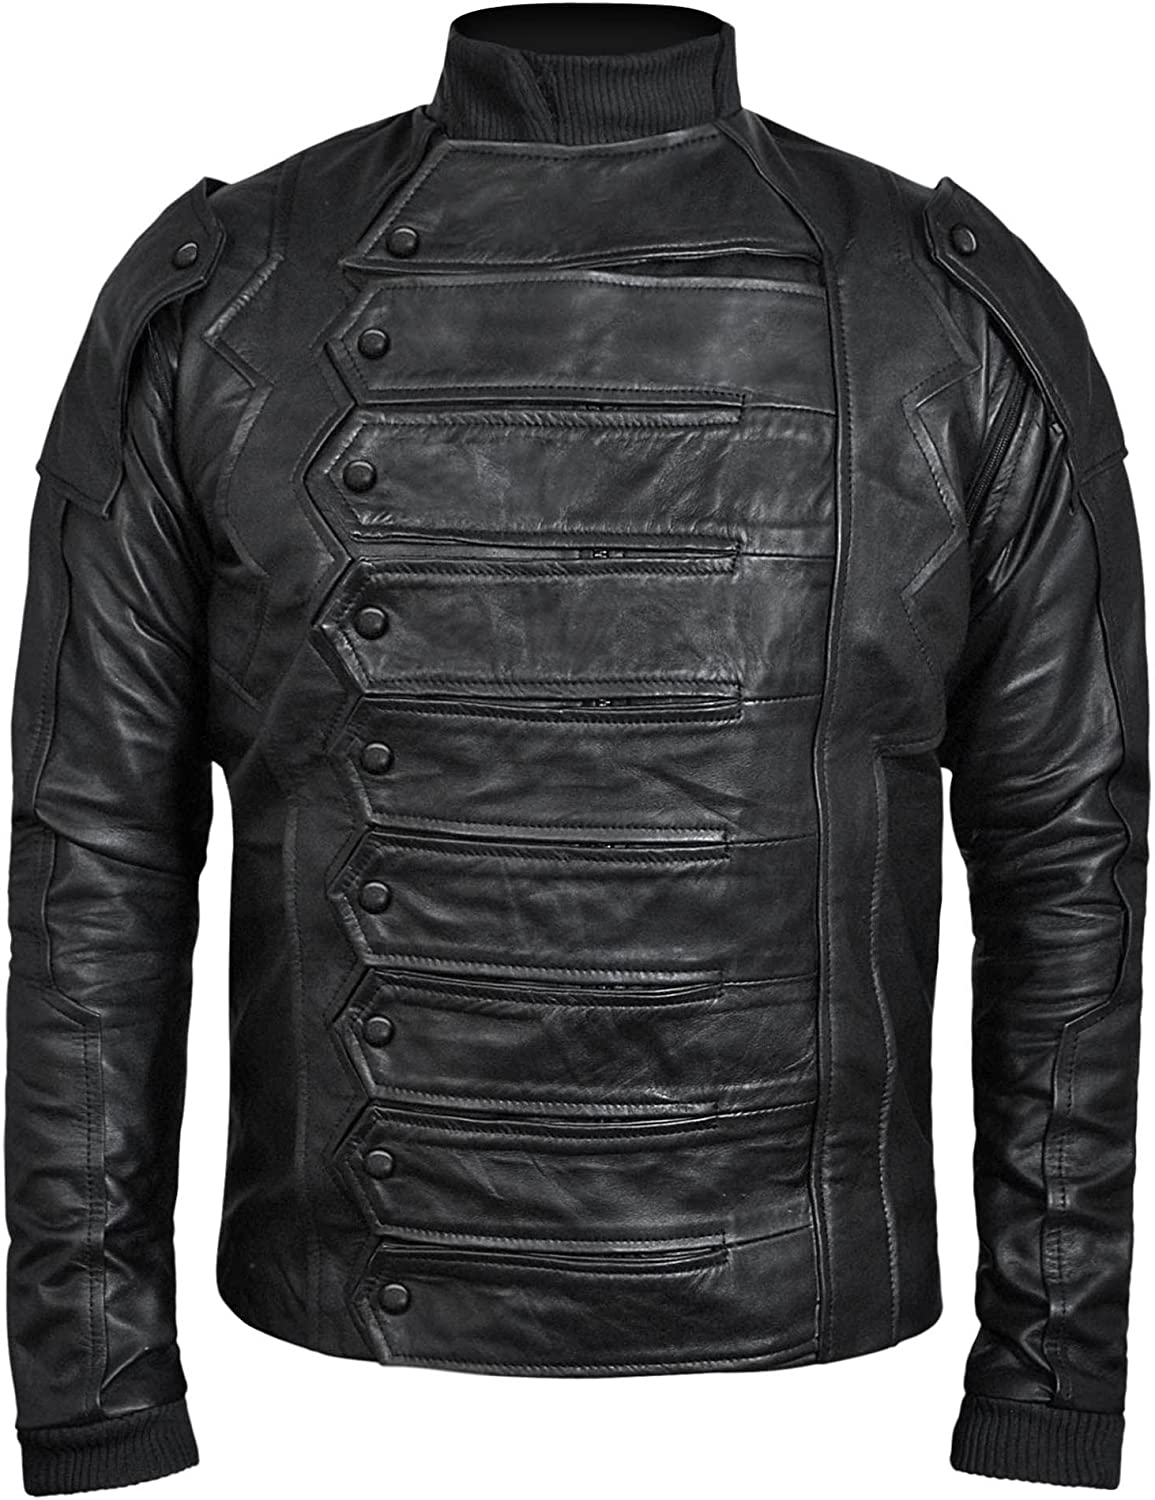 Famous Soldier Black Bucky Vest Jacket 2 in 1 Style - ►Real Leather Jacket◄